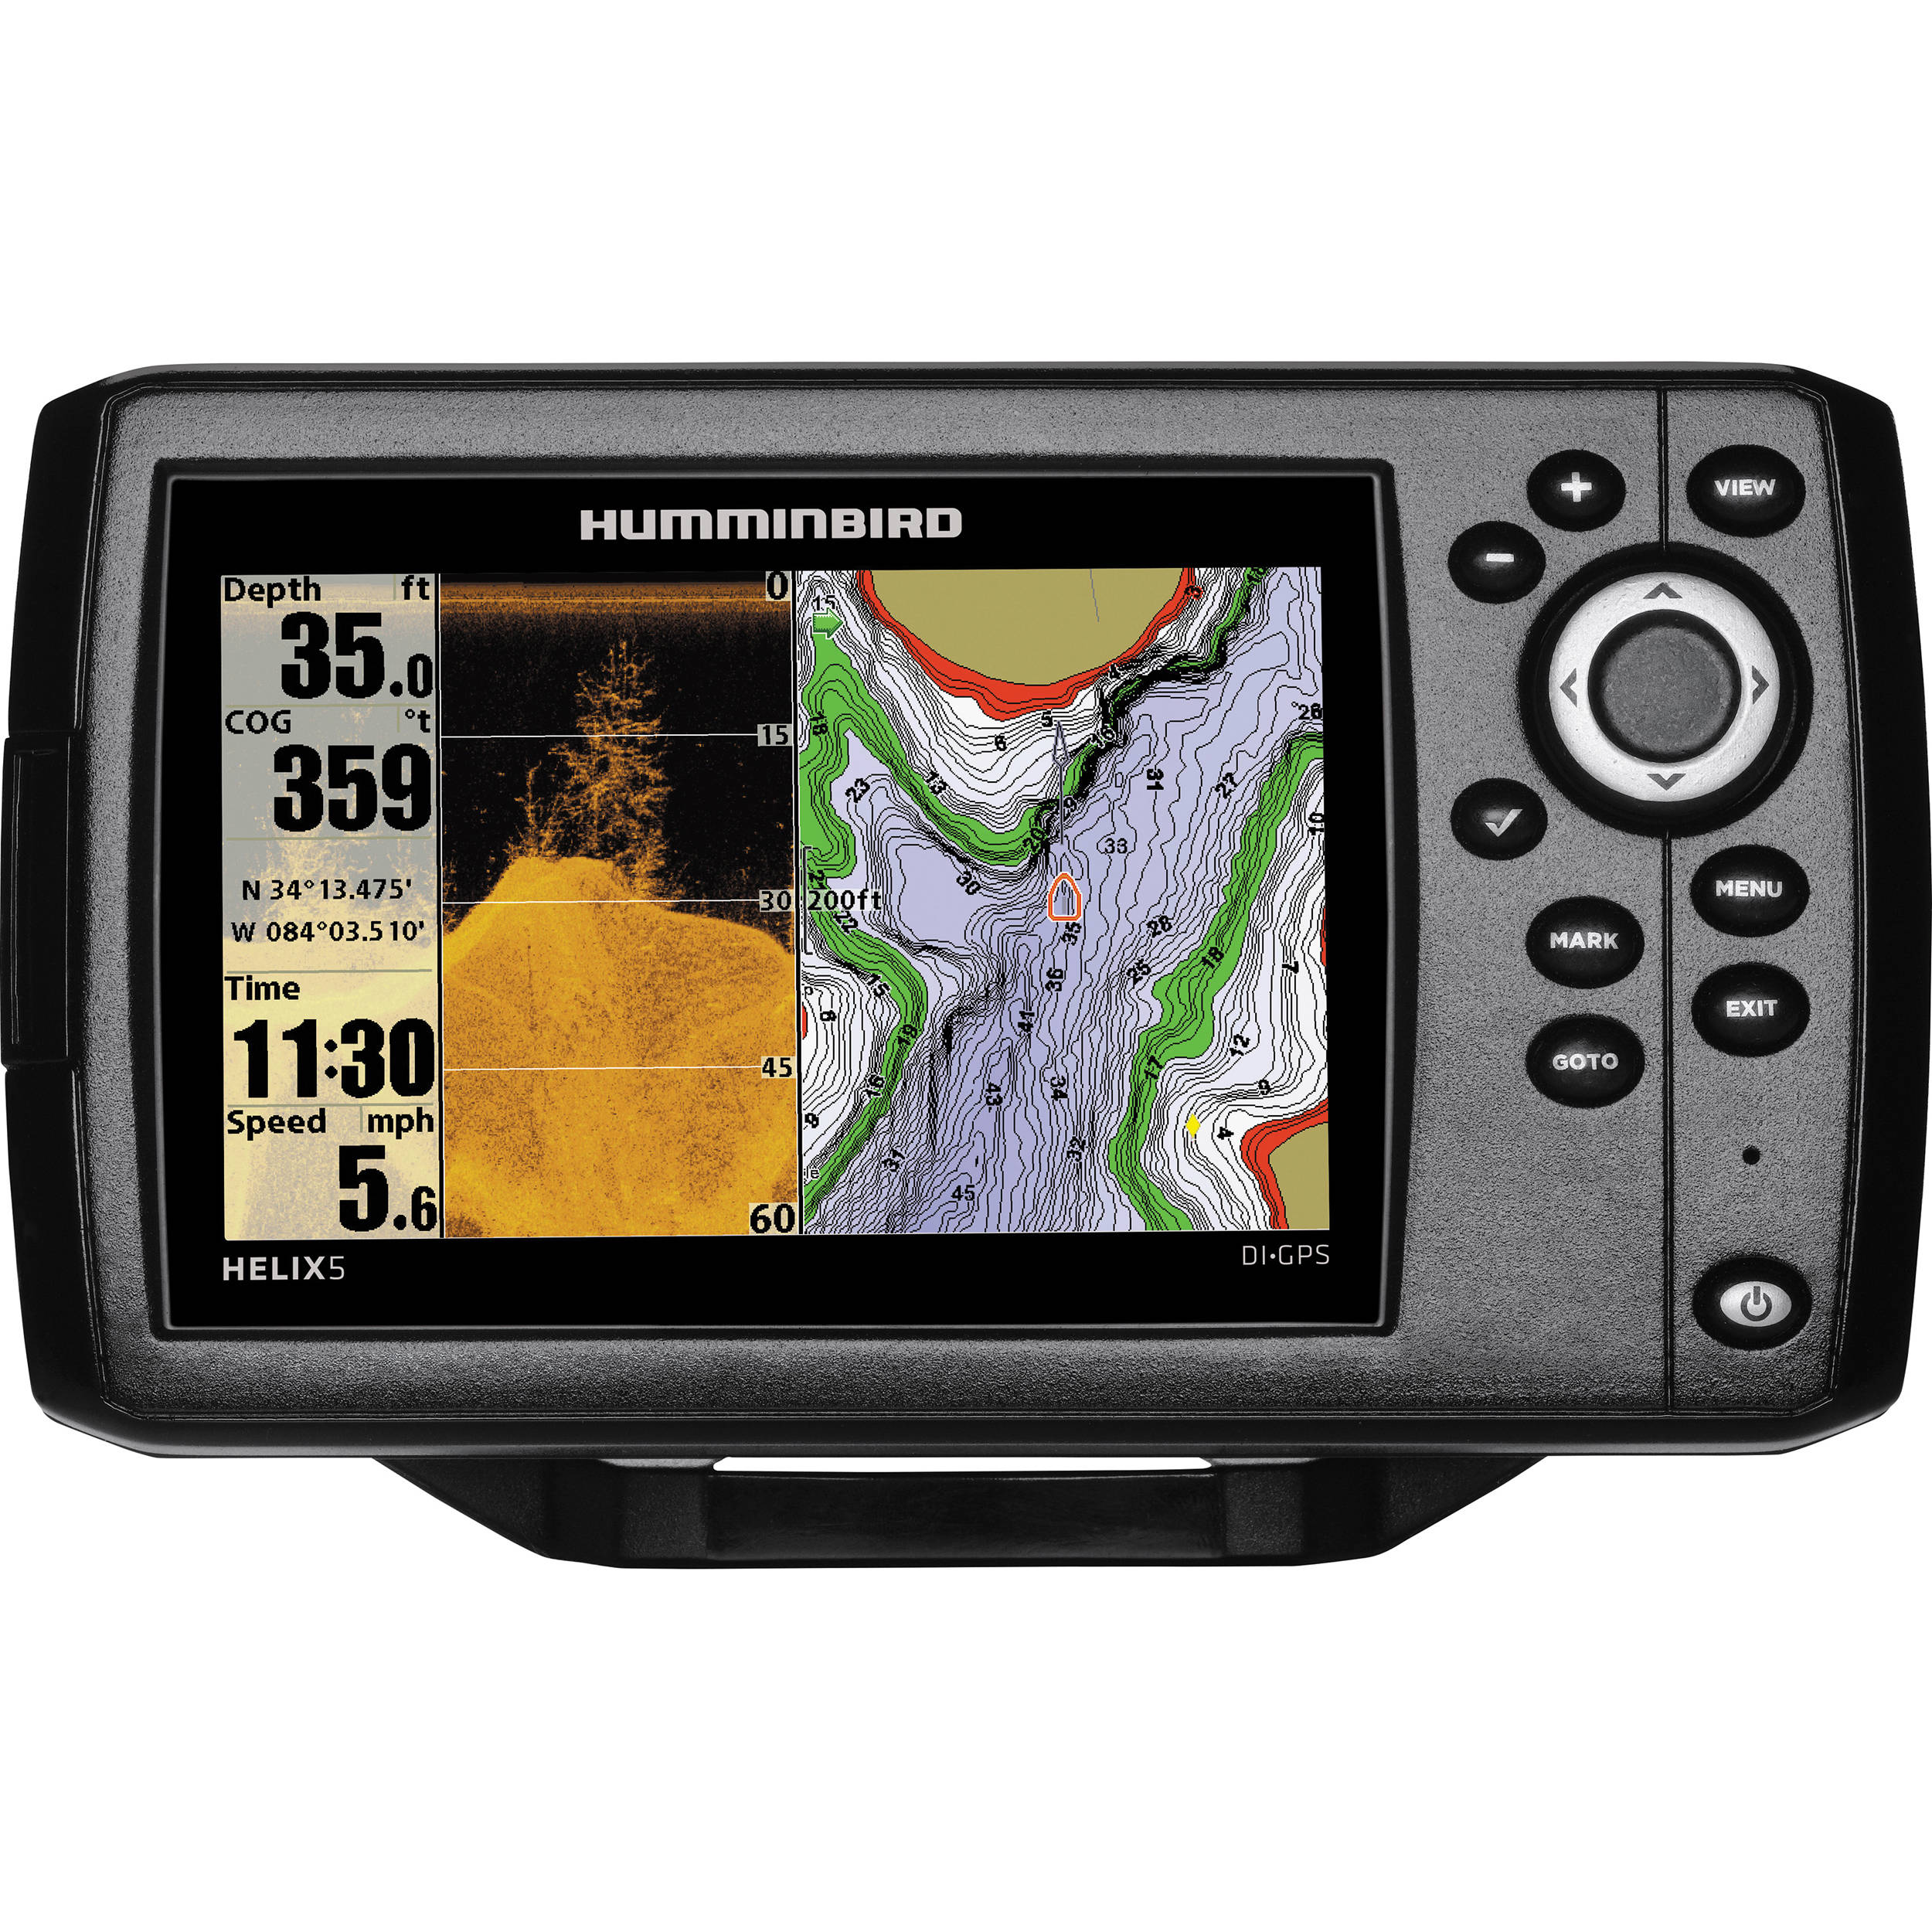 humminbird helix 5 di gps fishfinder 409620-1 b&h photo video, Fish Finder